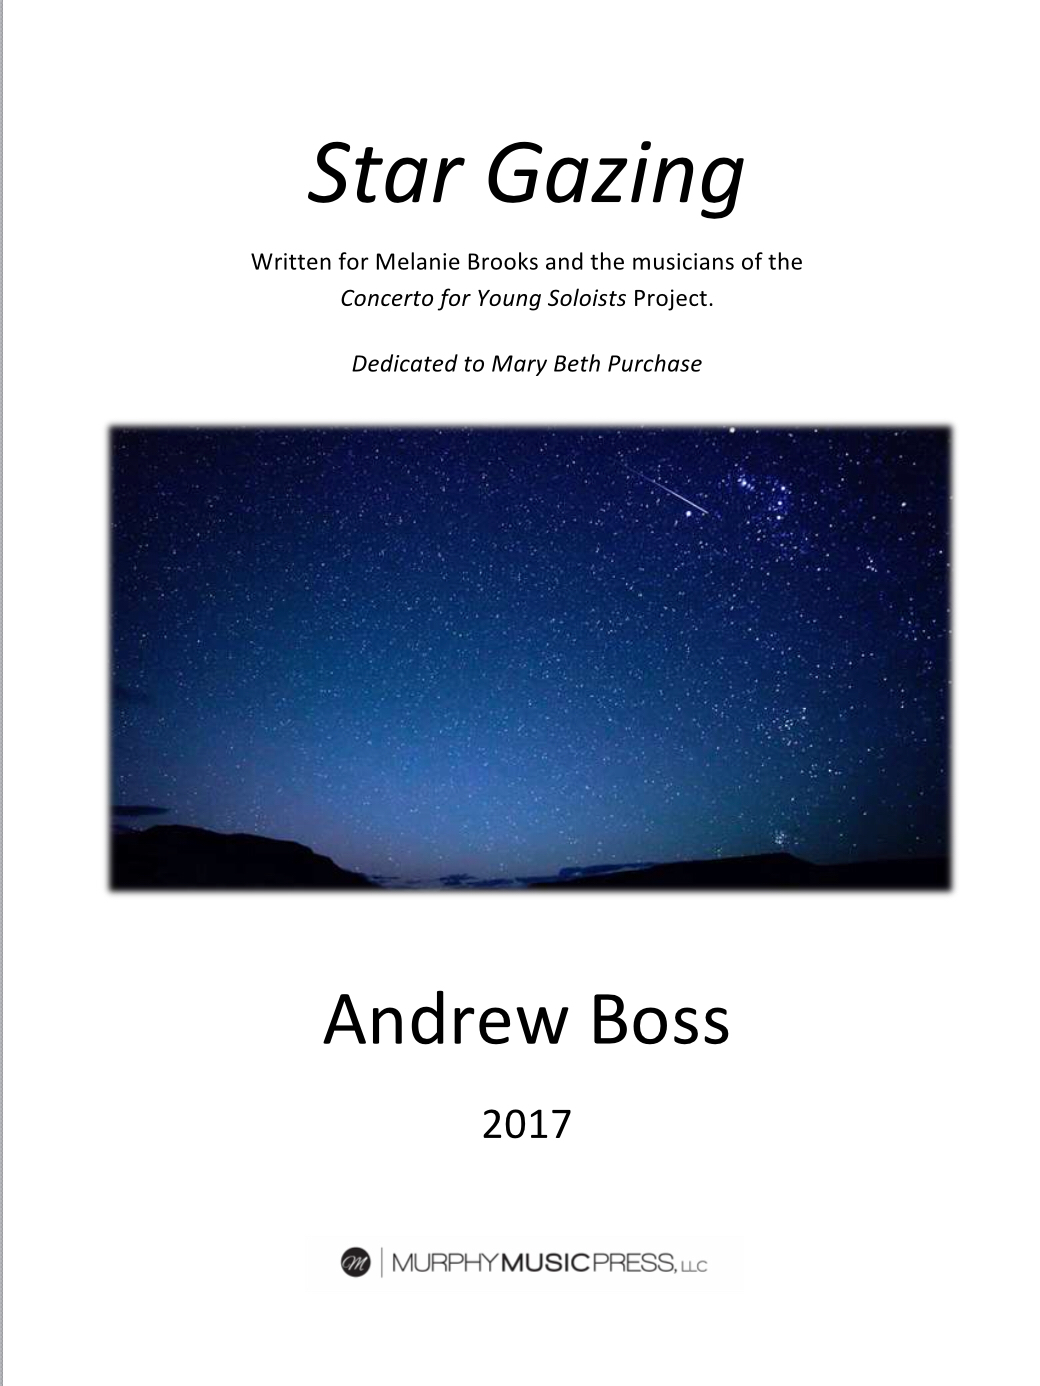 Stargazing by Andrew Boss